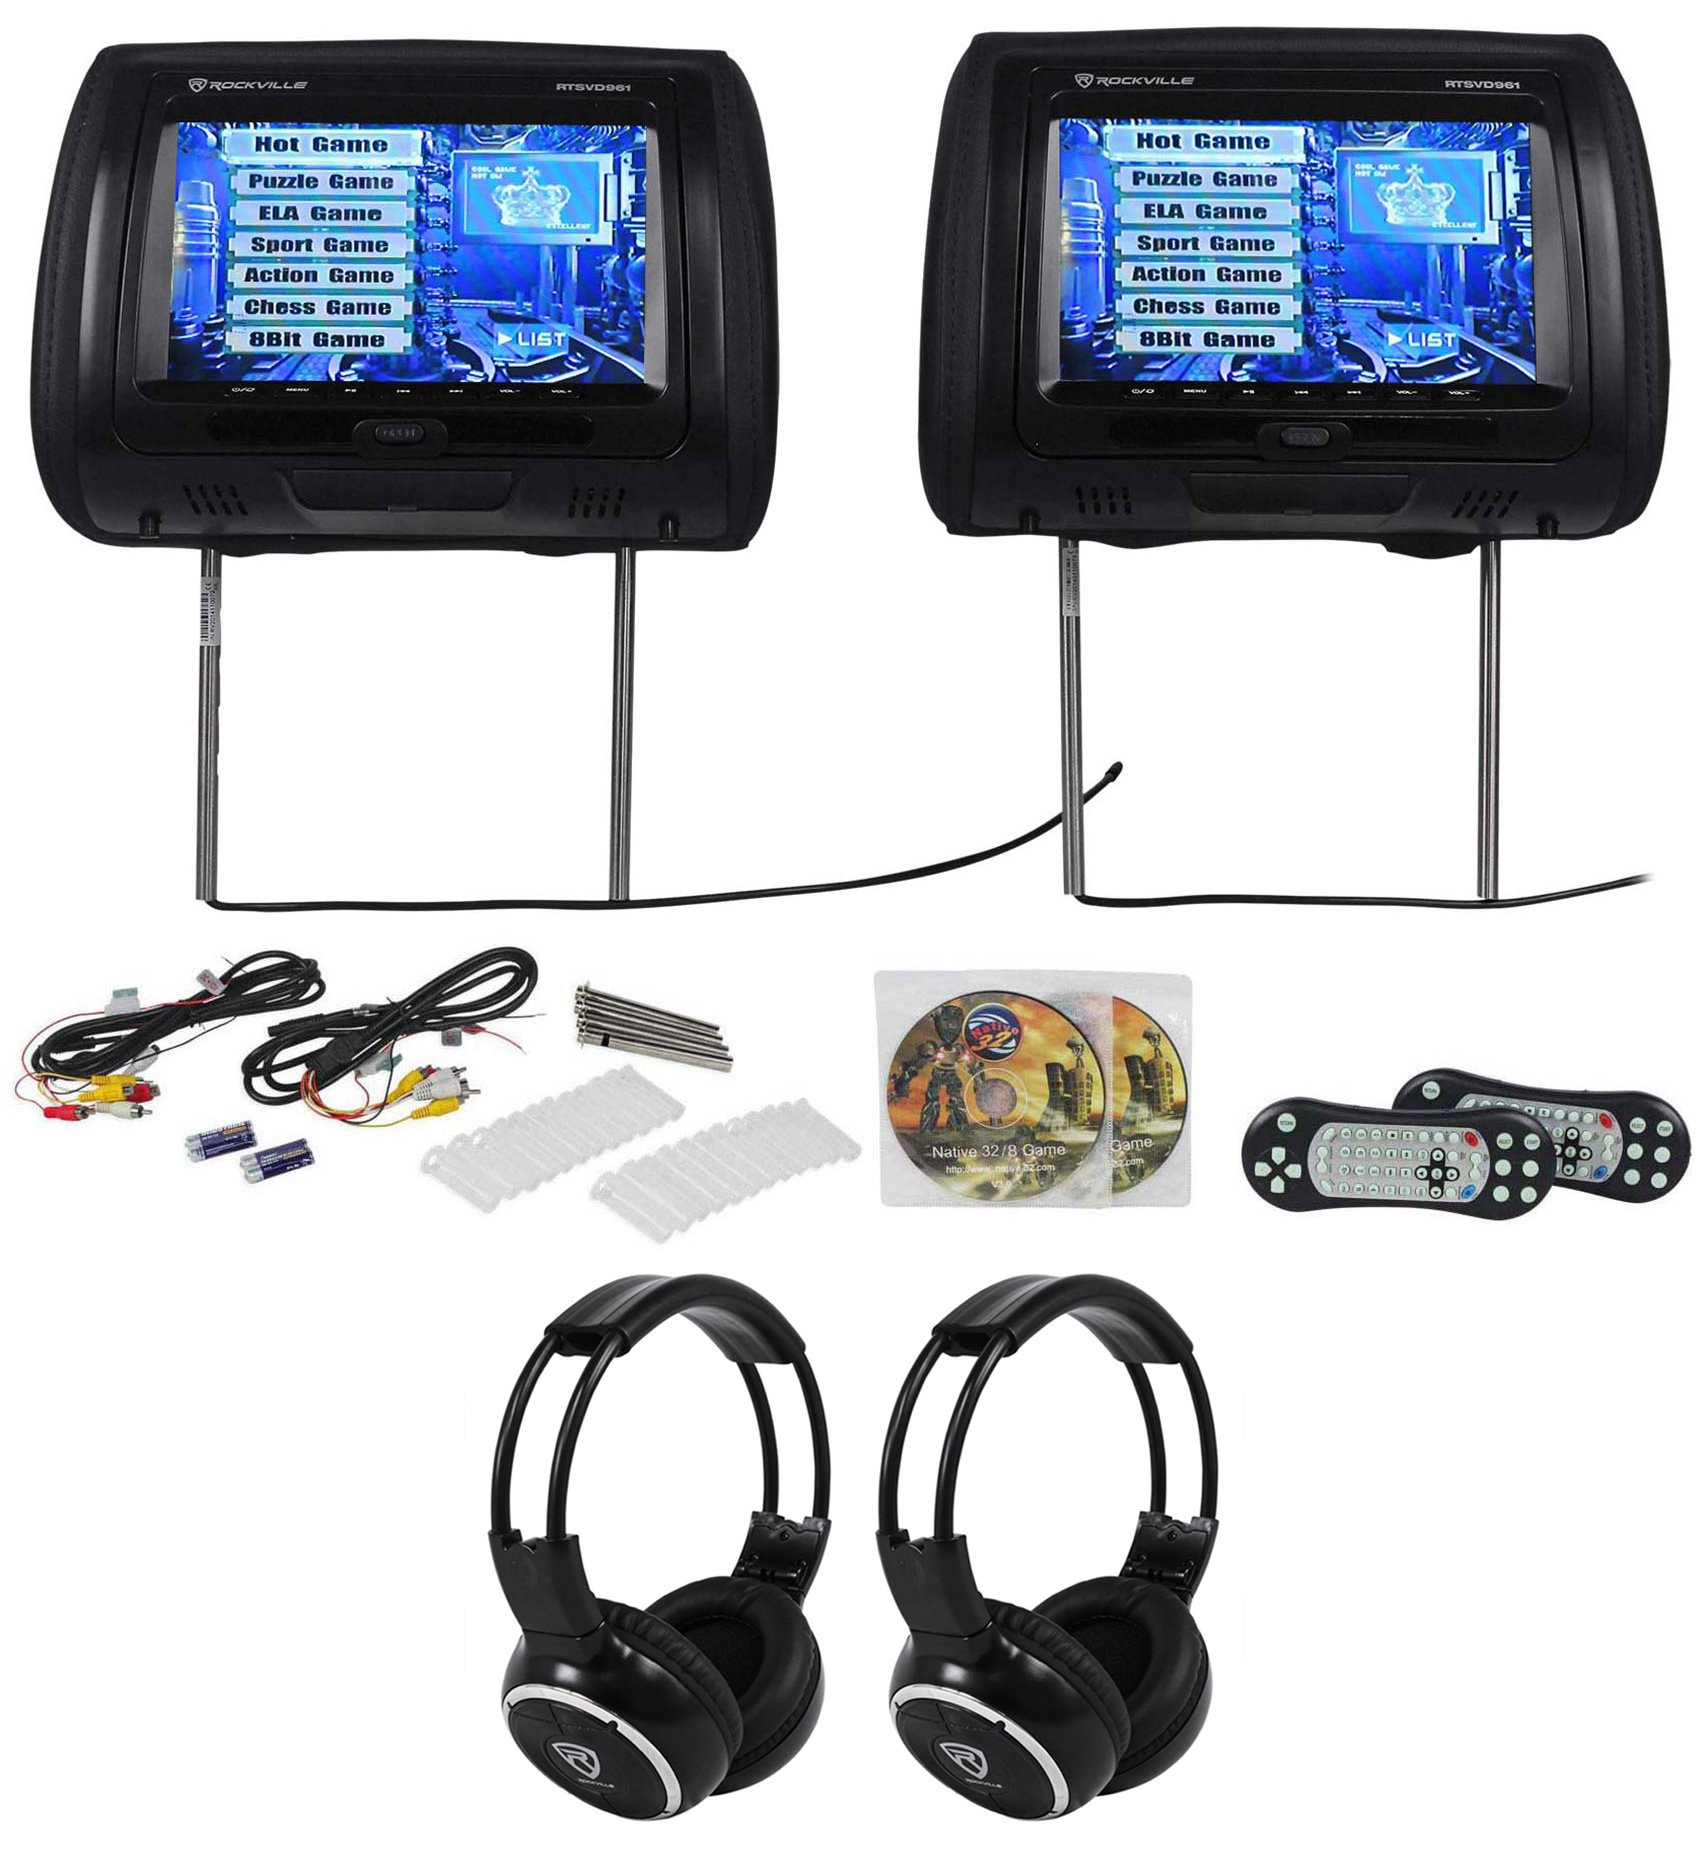 "Rockville RTSVD961-BK 9"" Black Touchscreen DVD/HDMI Headrest Monitors+Headphones by Rockville"